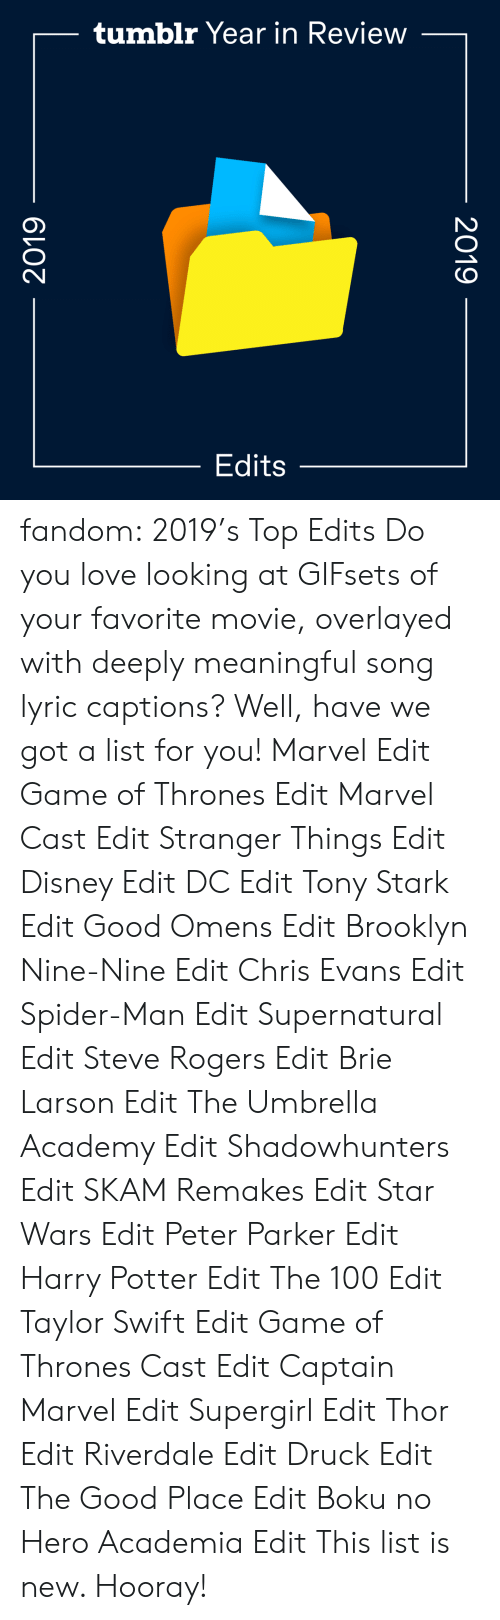 edits: tumblr Year in Review  Edits  2019  2019 fandom:  2019's Top Edits  Do you love looking at GIFsets of your favorite movie, overlayed with deeply meaningful song lyric captions? Well, have we got a list for you!  Marvel Edit  Game of Thrones Edit  Marvel Cast Edit  Stranger Things Edit  Disney Edit  DC Edit  Tony Stark Edit  Good Omens Edit  Brooklyn Nine-Nine Edit  Chris Evans Edit  Spider-Man Edit  Supernatural Edit  Steve Rogers Edit  Brie Larson Edit  The Umbrella Academy Edit  Shadowhunters Edit  SKAM Remakes Edit  Star Wars Edit  Peter Parker Edit  Harry Potter Edit  The 100 Edit  Taylor Swift Edit  Game of Thrones Cast Edit  Captain Marvel Edit  Supergirl Edit  Thor Edit  Riverdale Edit  Druck Edit  The Good Place Edit  Boku no Hero Academia Edit This list is new. Hooray!